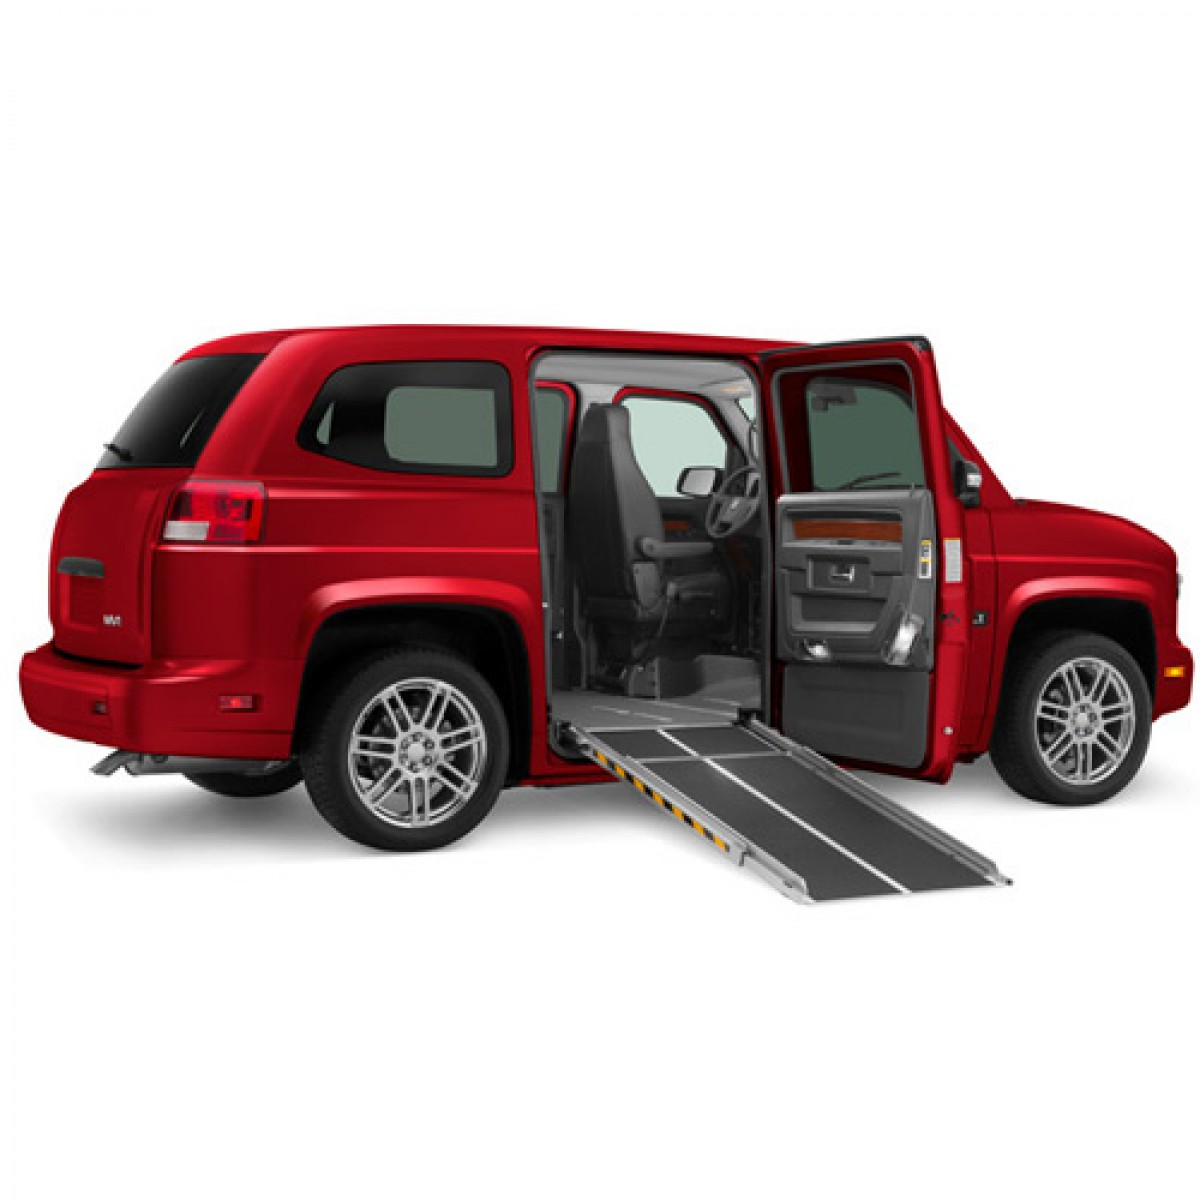 Mv 1 By Mobility Ventures Alabama Griffin Mobility